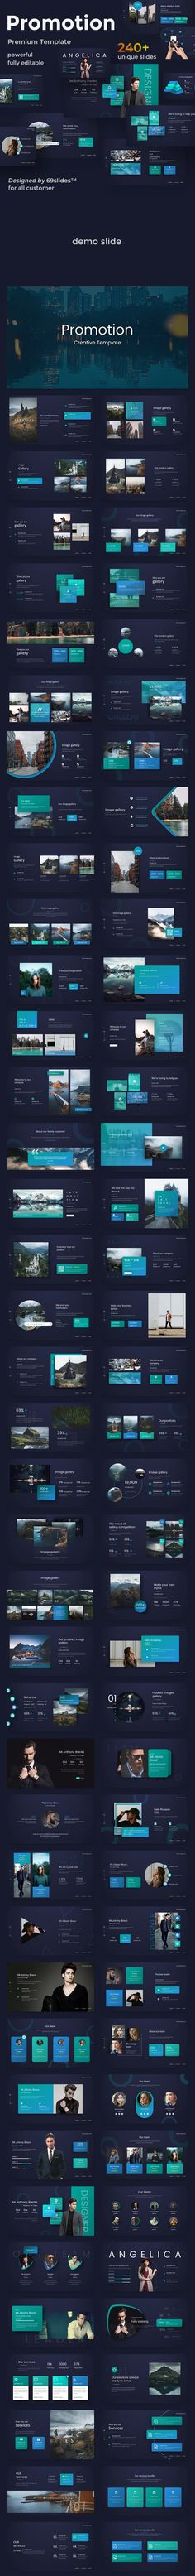 Marin Premium Keynote Template - Keynote Creative Presentation Template by bluestack. Business Plan Presentation, Presentation Slides, Presentation Design, Presentation Templates, Promotion, Best Online Courses, Slide Template, Creative Powerpoint Templates, Keynote Template